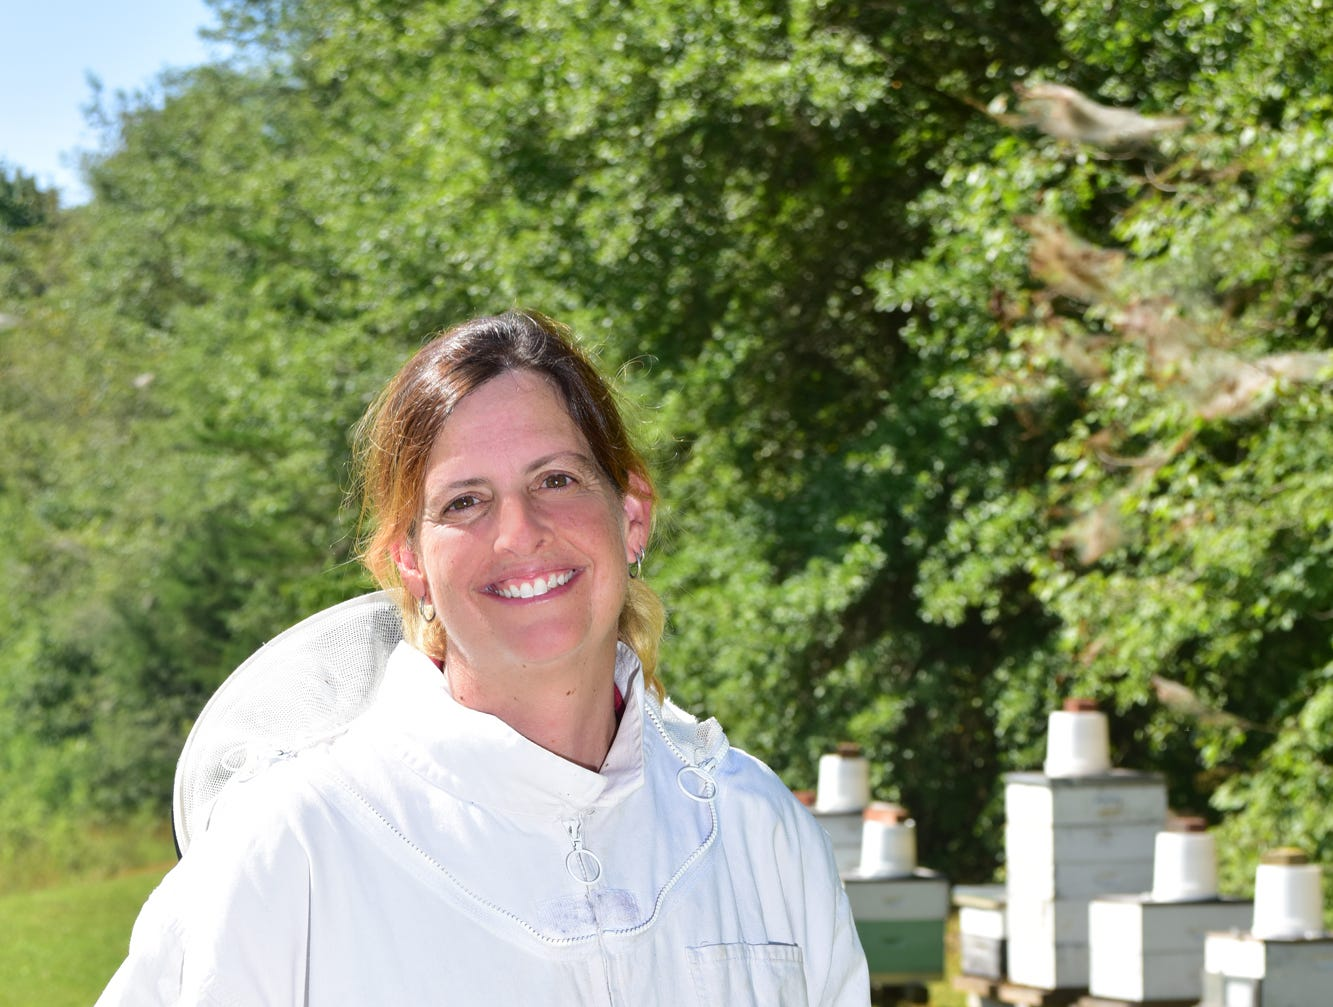 Susan Gardner, co-owner/operator of The Carolina Honey Bee Co, was the 15 Minutes With feature for the Septemeber issue of TALK.